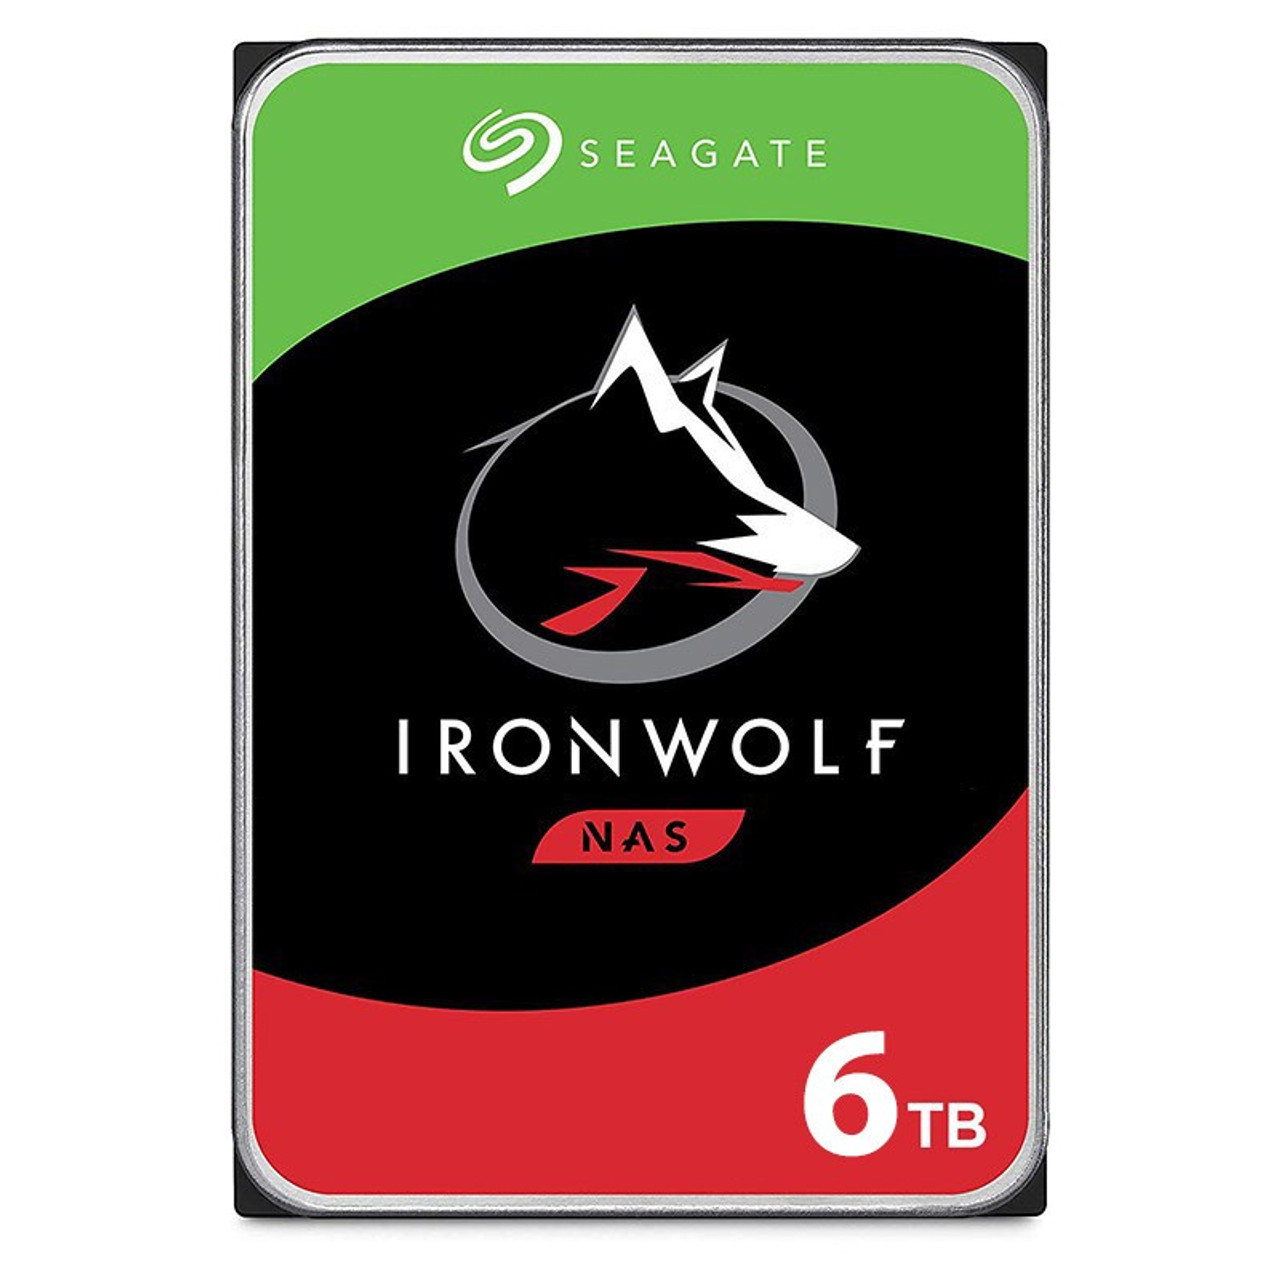 Image for Seagate ST6000VN001 6TB IronWolf 3.5in 5400RPM SATA NAS Hard Drive CX Computer Superstore